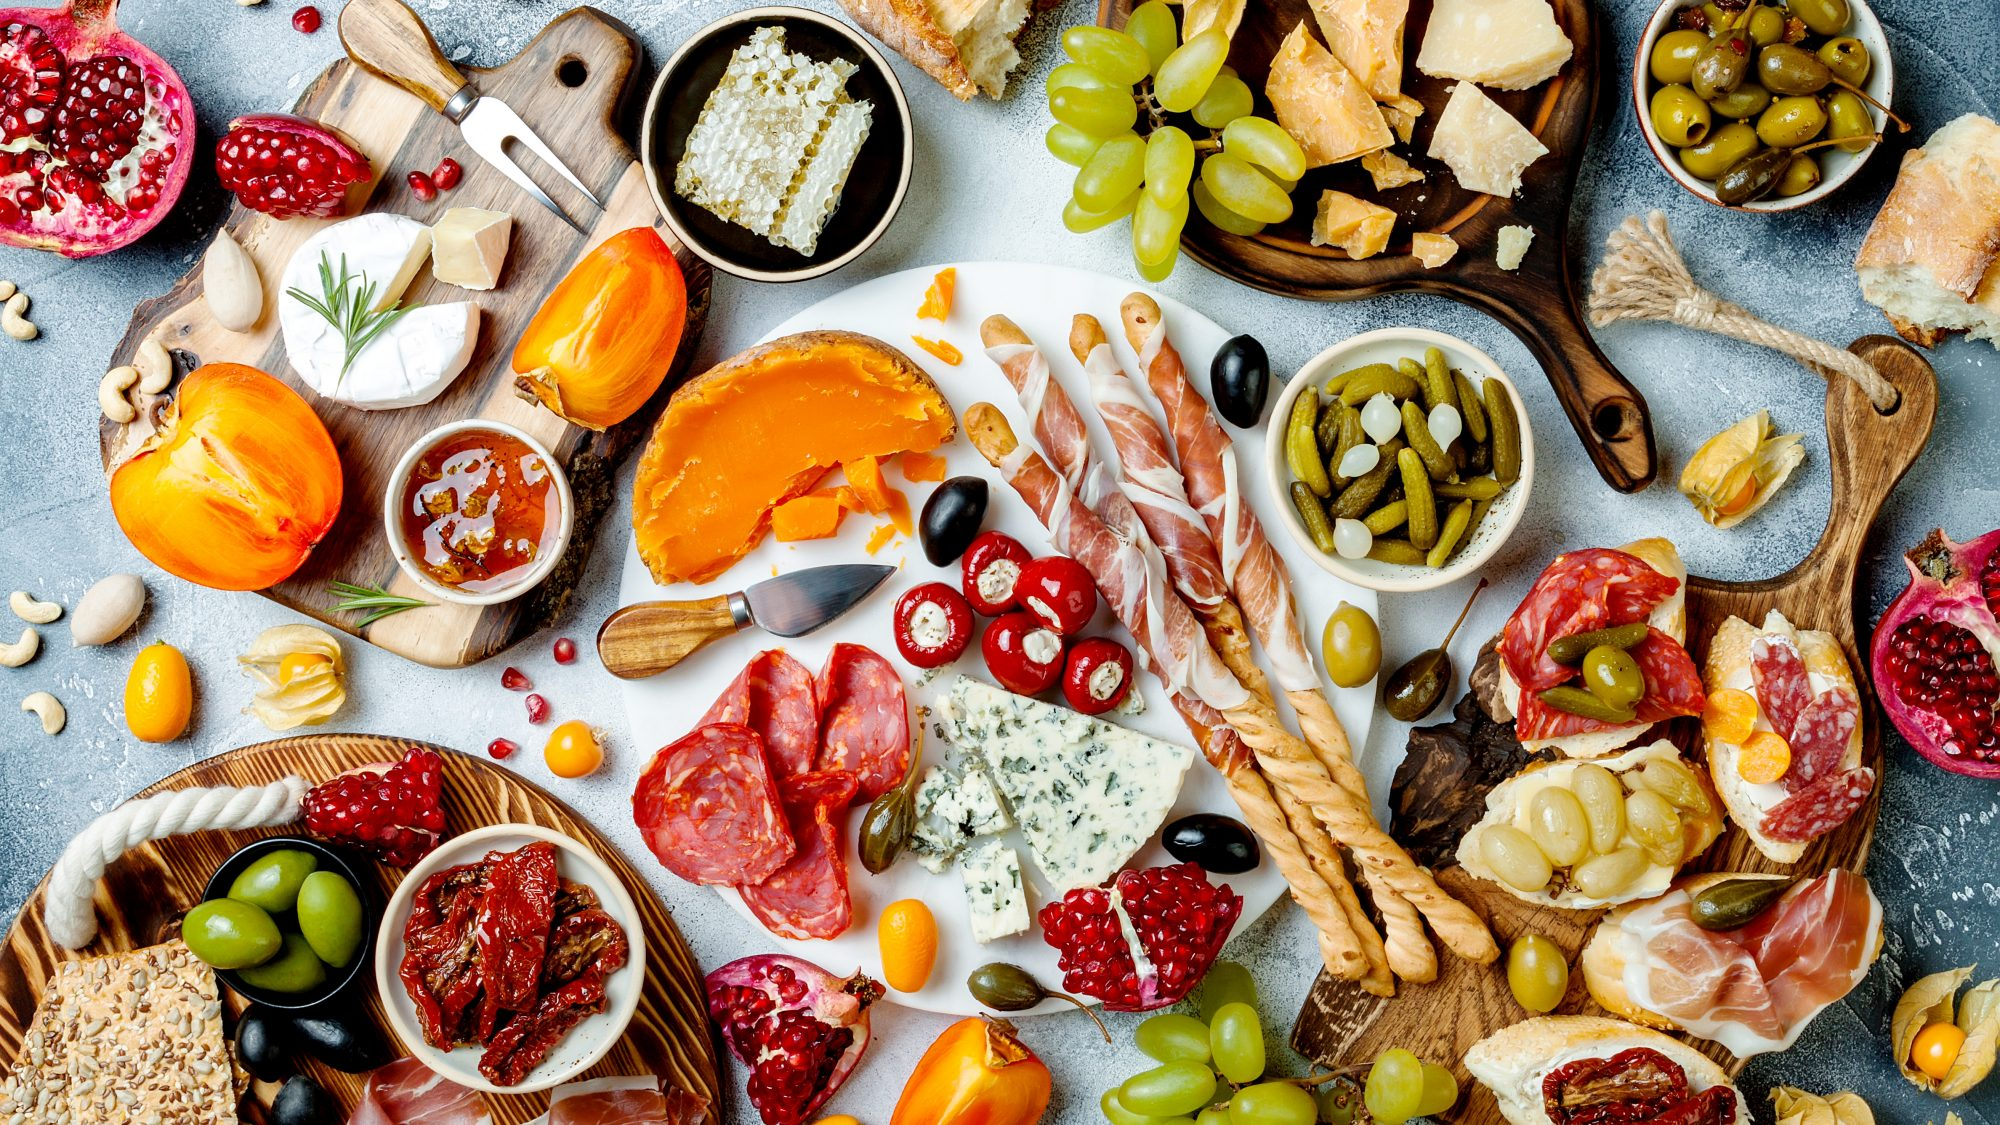 Pinterest Predicts 2021 Trend Forecast: Epic Charcuterie Boards and more trends for next year